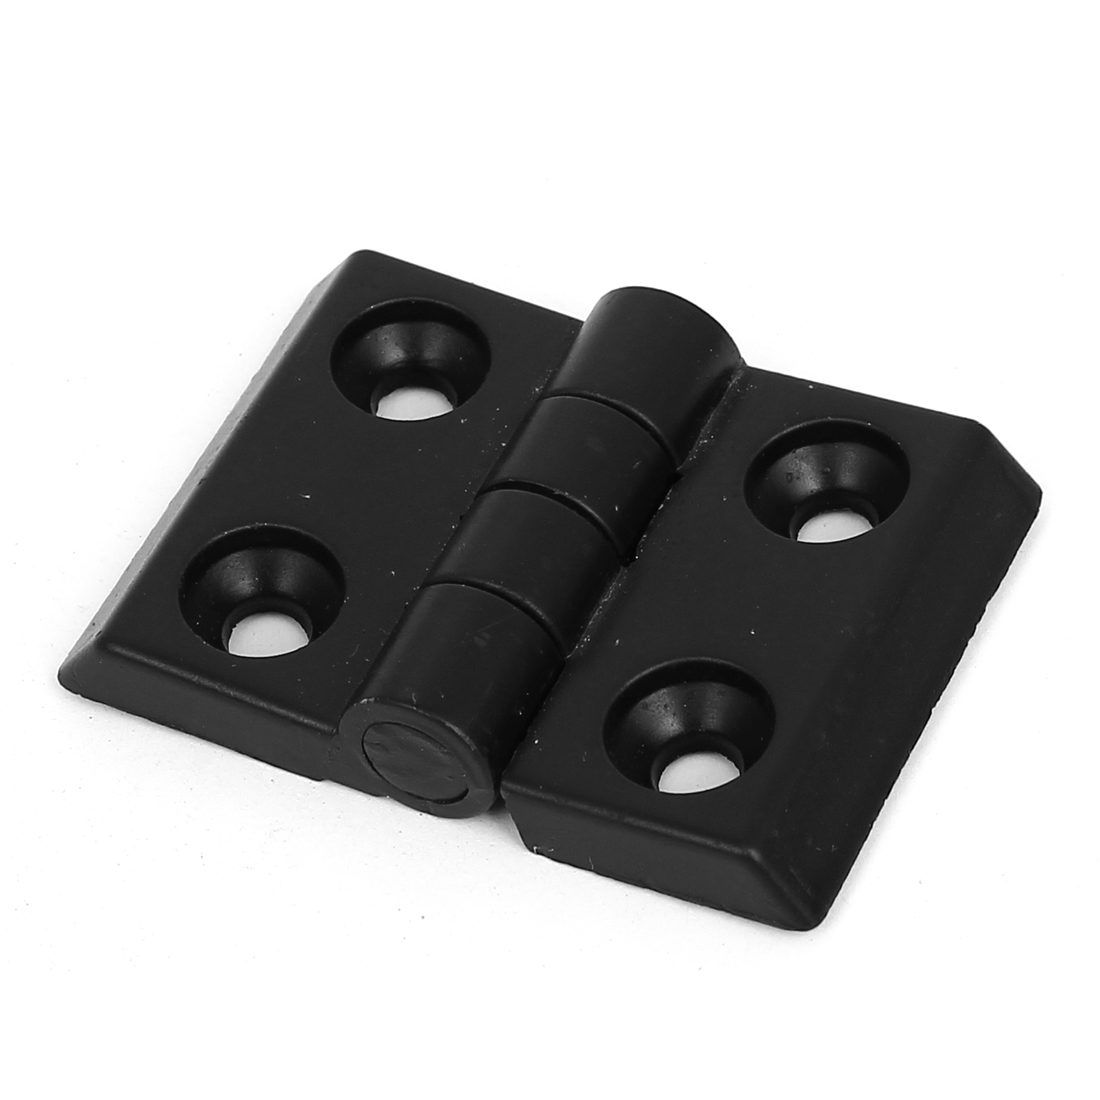 35mm x 24mm 2 Leaves Foldable Rotatable Zinc Alloy Bearing Butt Hinge Black